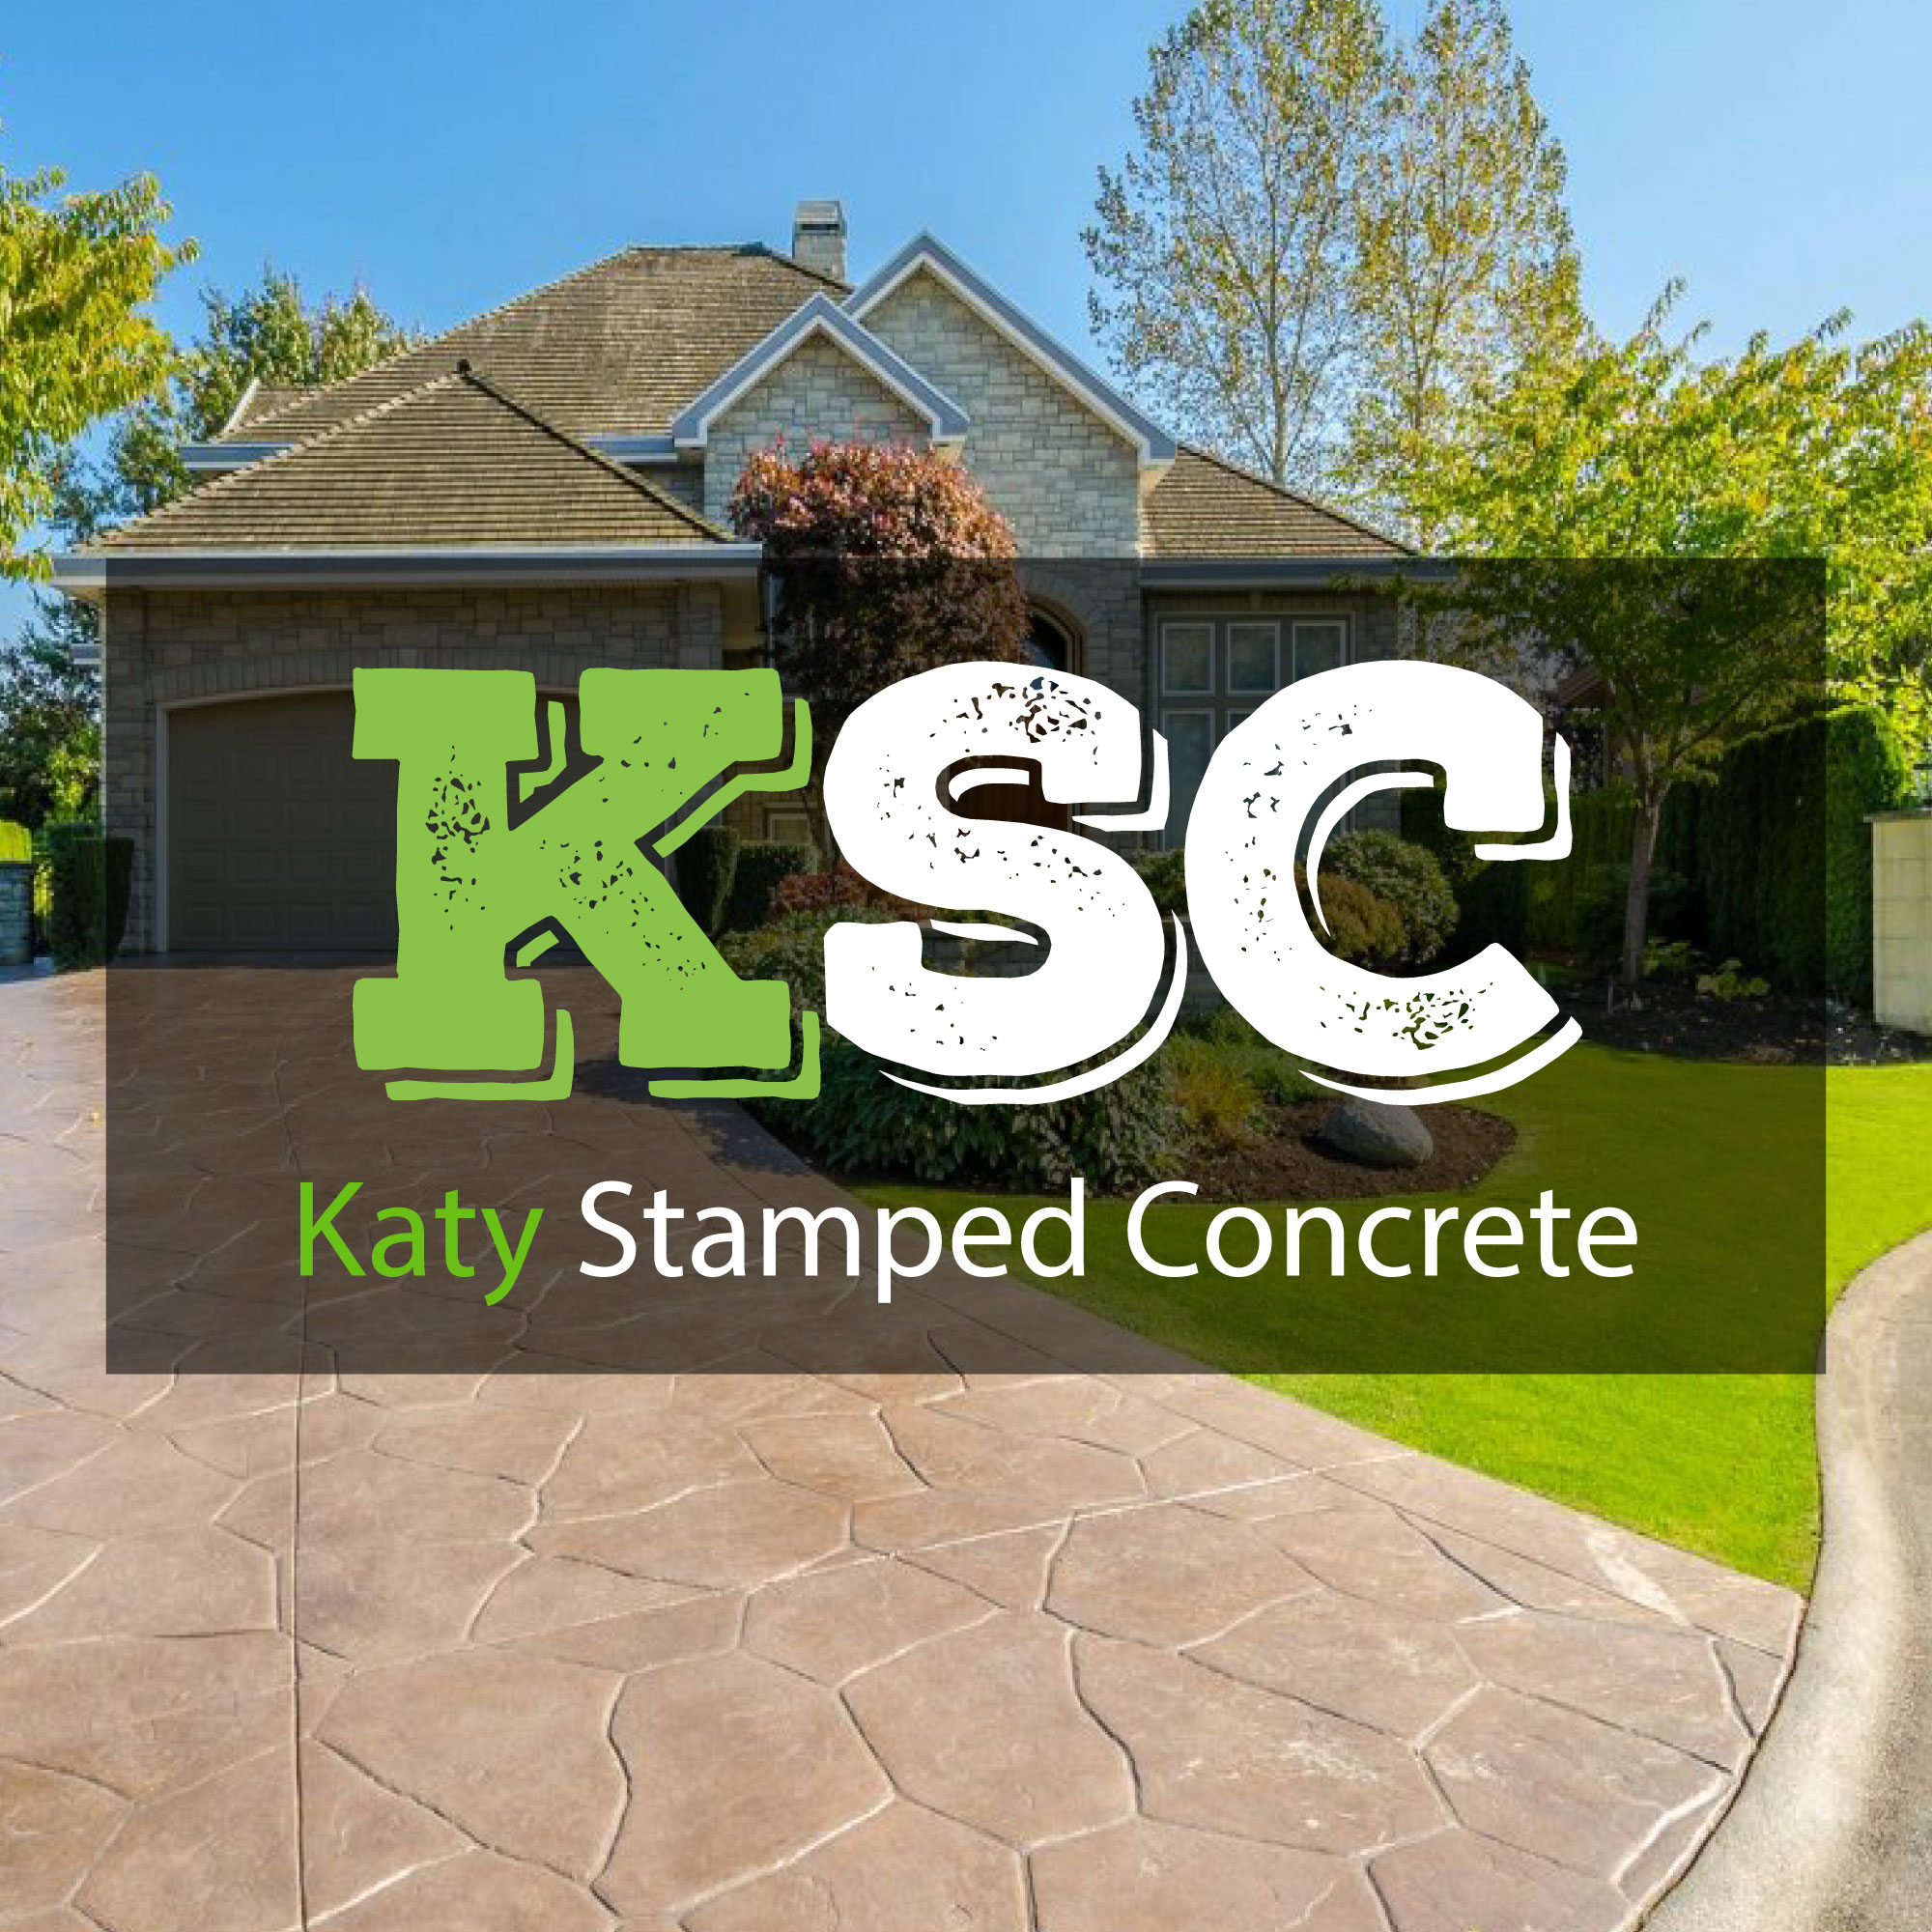 Katy-Stamped-Concrete-FB-Profile.jpg